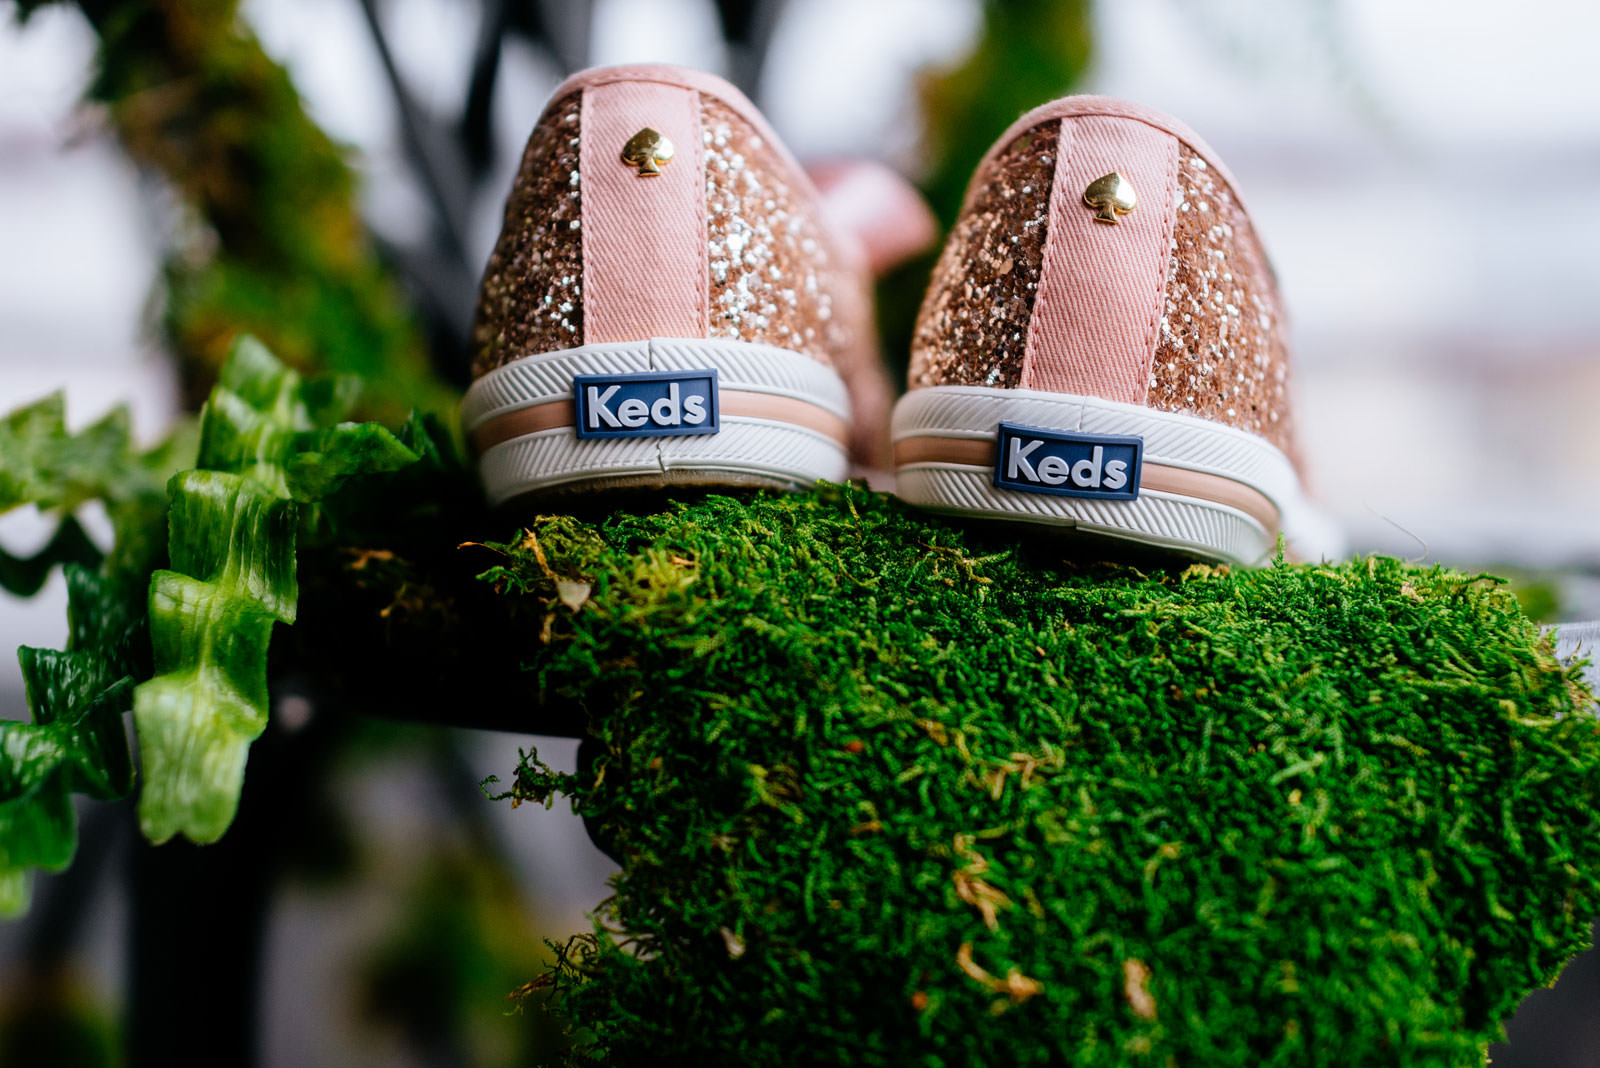 wedding details kate spade glitter keds sneakers